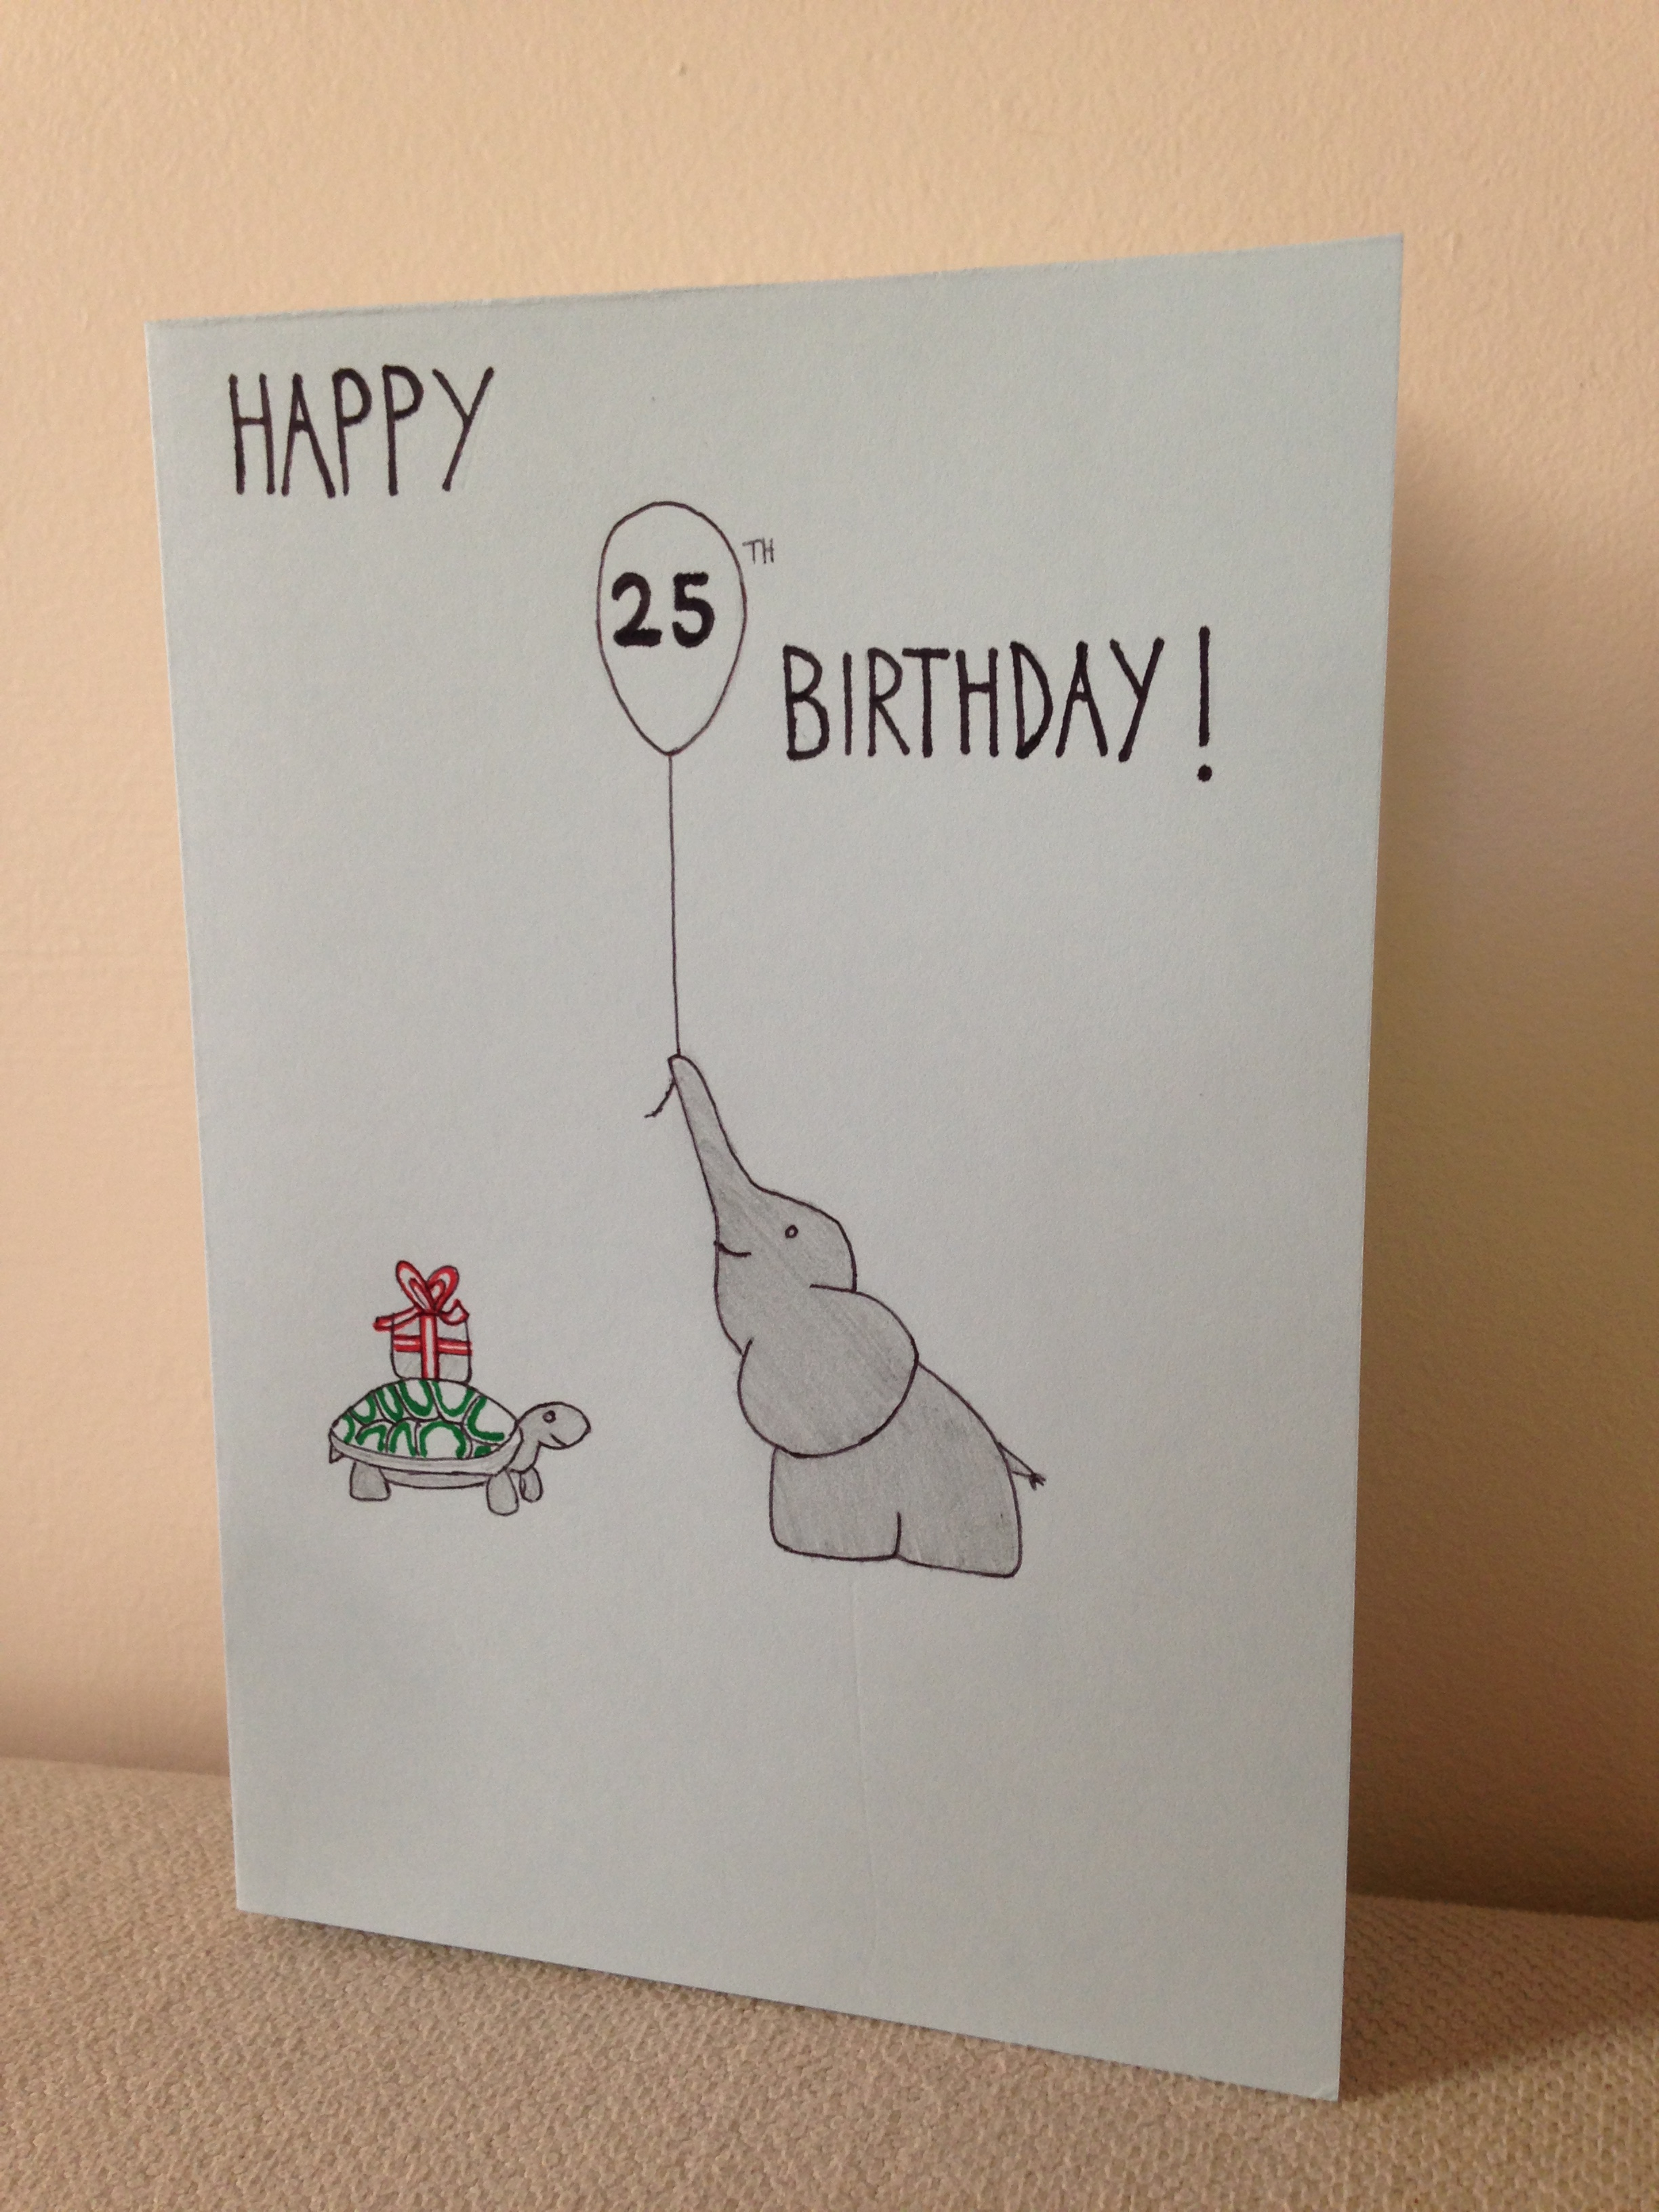 Ideas For Making Birthday Cards For Friends Birthday Cards Ideas Drawing At Getdrawings Free For Personal